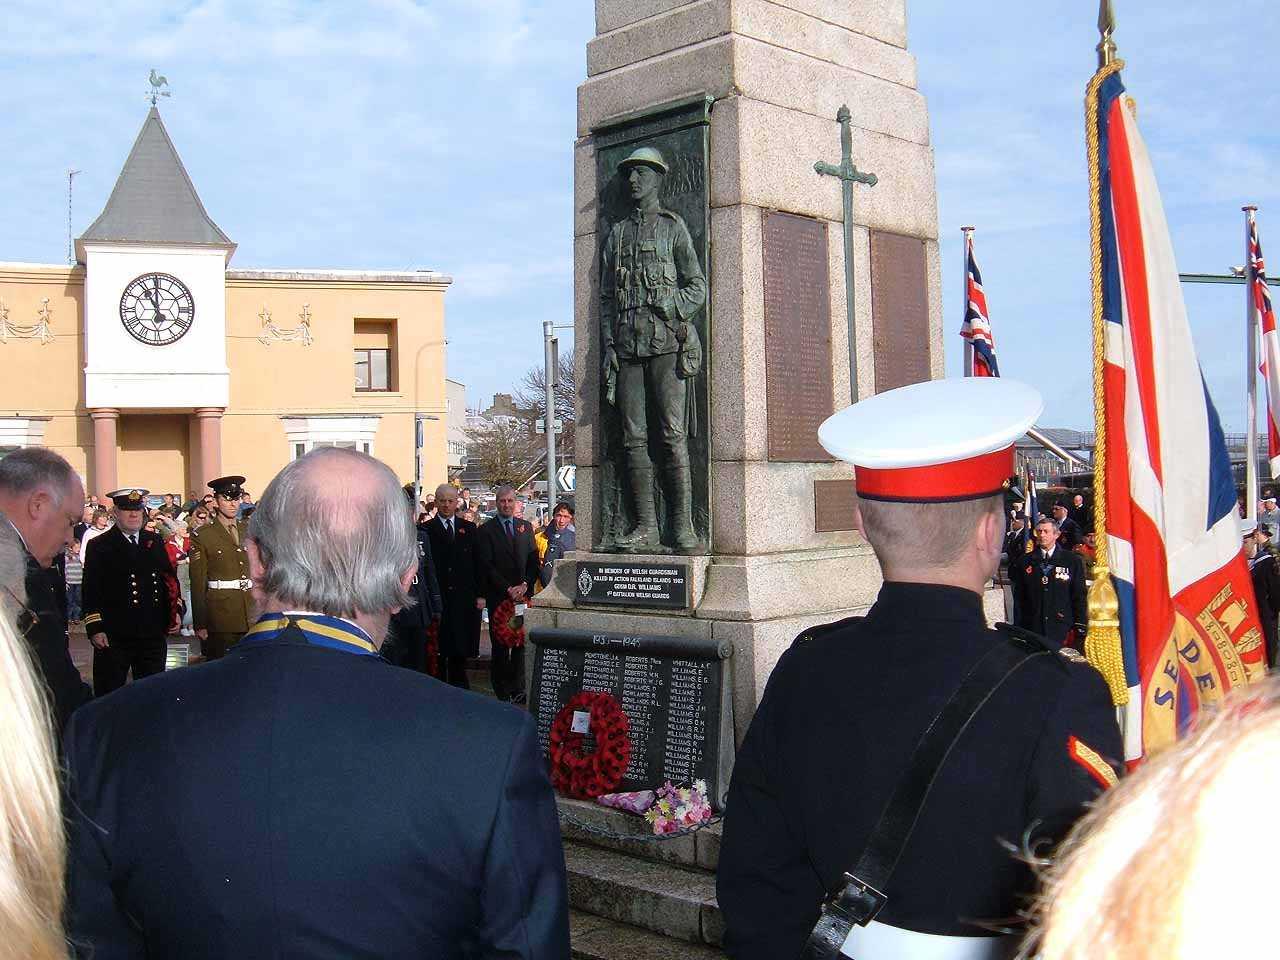 Anglesey, Holyhead, Remembrance Sunday 2006 - Uniformed Men pay tribute